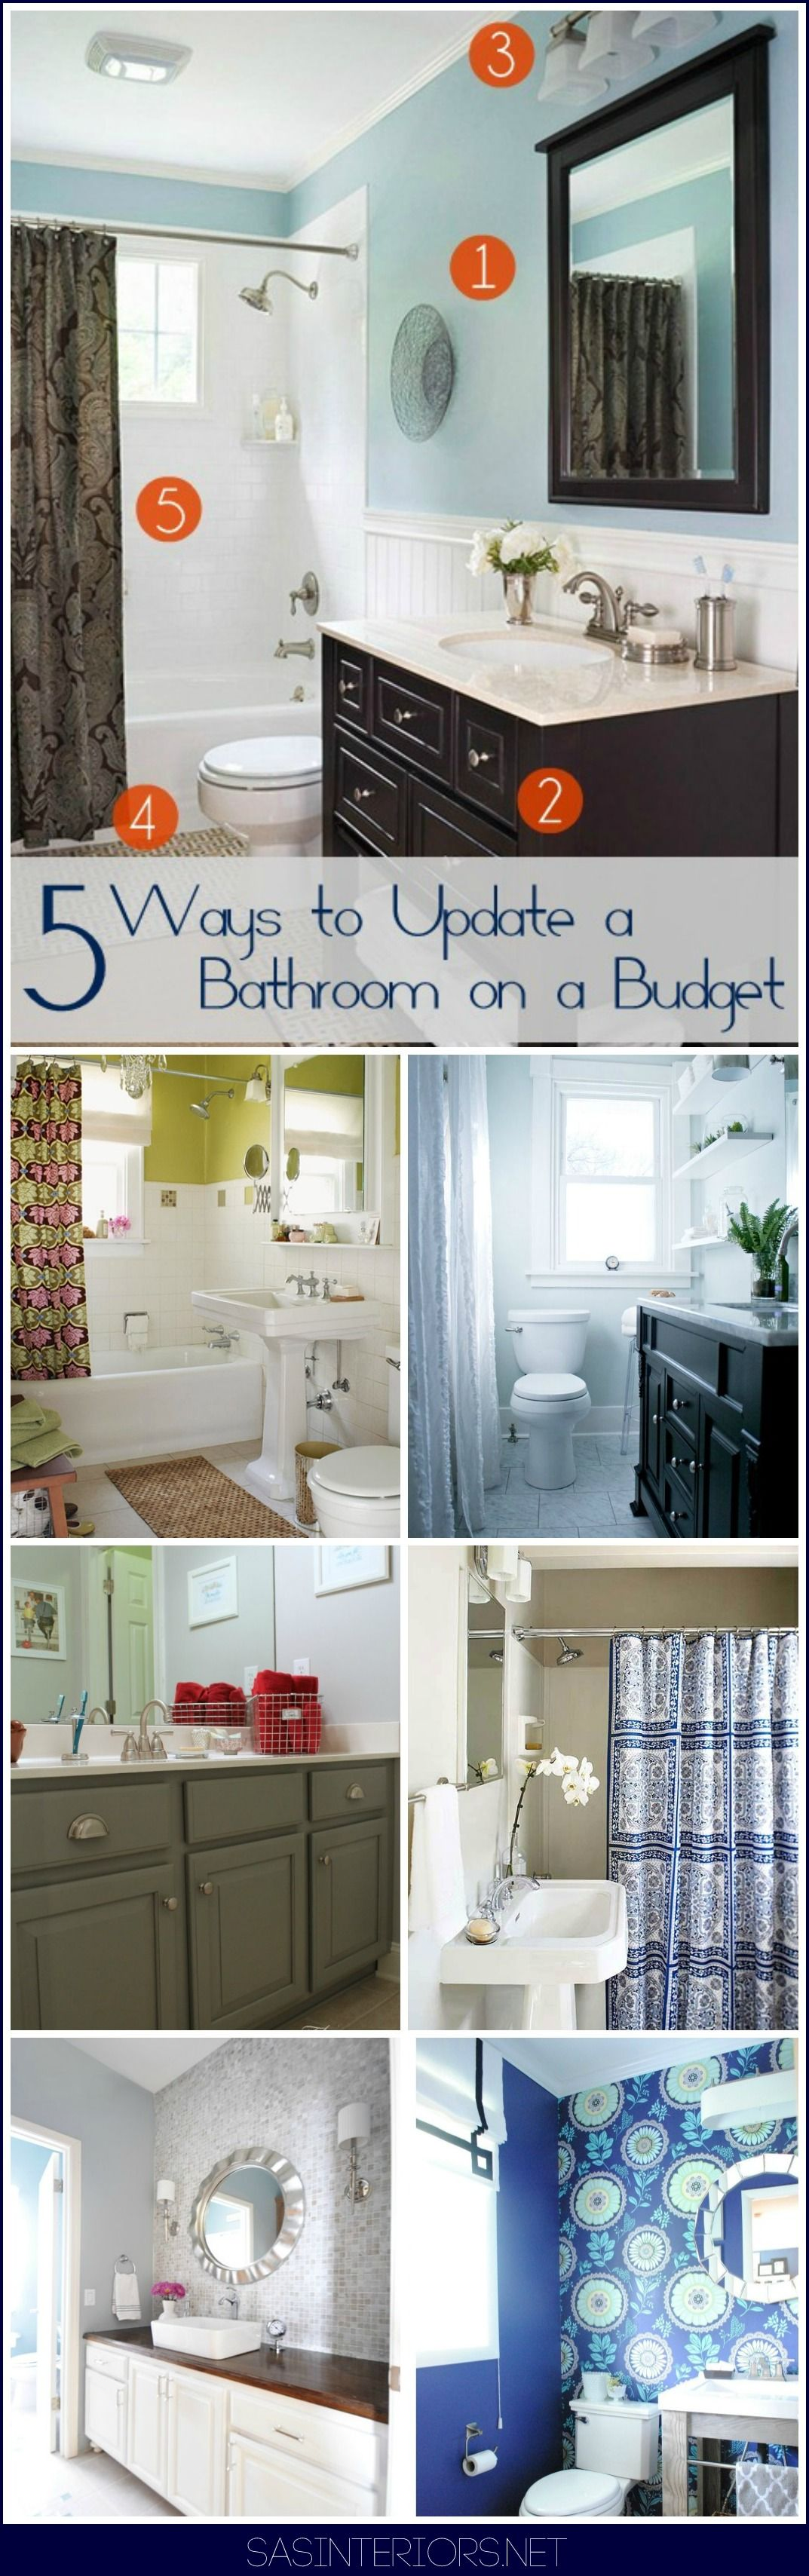 BATHROOM REMODEL: 5 Ways To Upgrade A Bathroom On A Budget: Donu0027t Neglect A  Needed Bathroom Revamp Because Of Cost + No Experience.